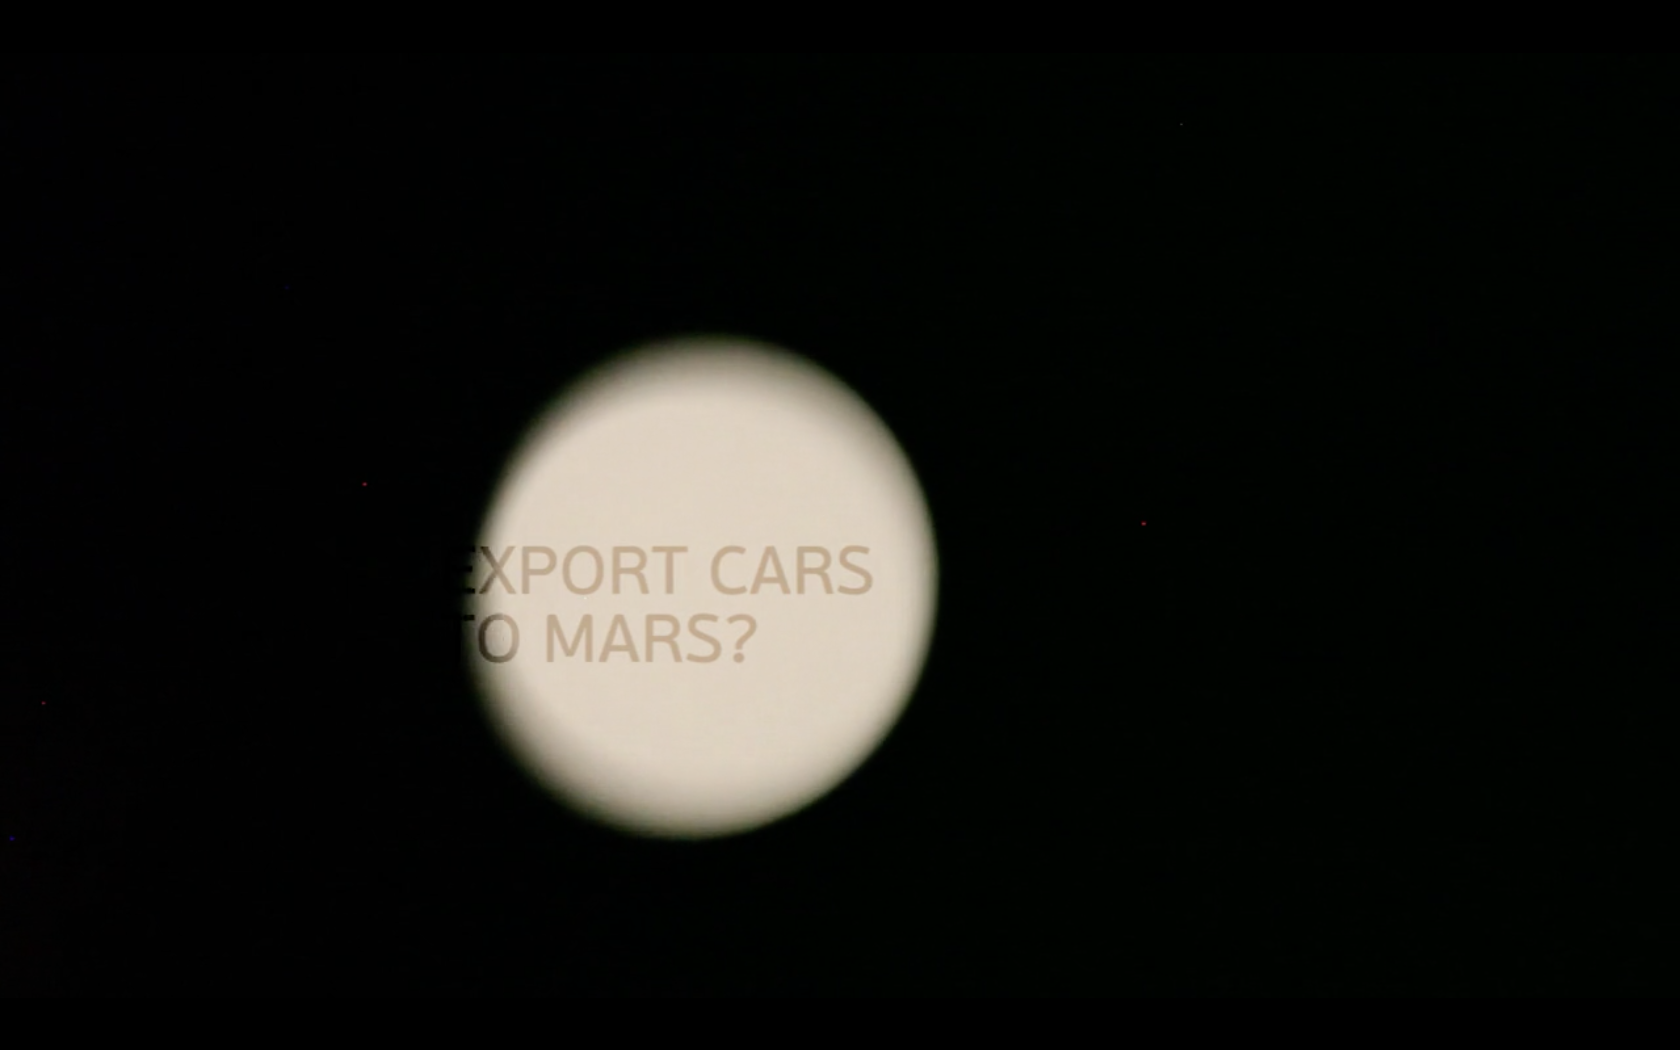 Export Cars to Mars